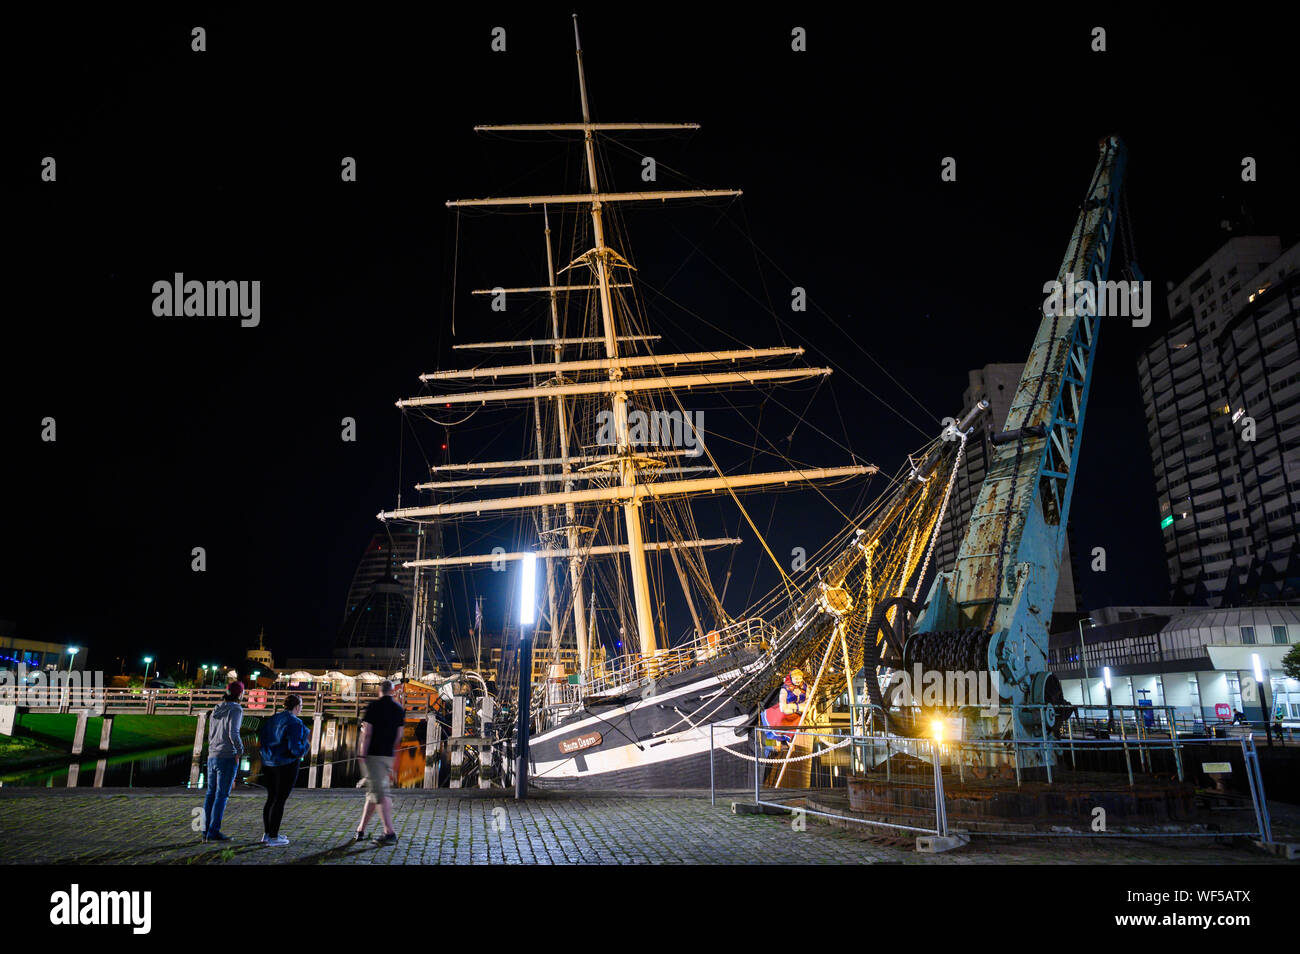 """Bremerhaven, Germany. 31st Aug, 2019. The historic sailing ship """"Seute Deern"""" has fallen into a sloping position due to a pump failure. When troops of the fire brigade explored the """"Seute Deern"""", the ship tilted so threateningly that the mission was aborted. The """"Seute Deern"""" (High German """"Sweet Girl"""") belongs to the museum fleet of the German Maritime Museum (DSM) and has been located in the Old Harbour for more than 50 years. Credit: Mohssen Assanimoghaddam/dpa/Alamy Live News Stock Photo"""